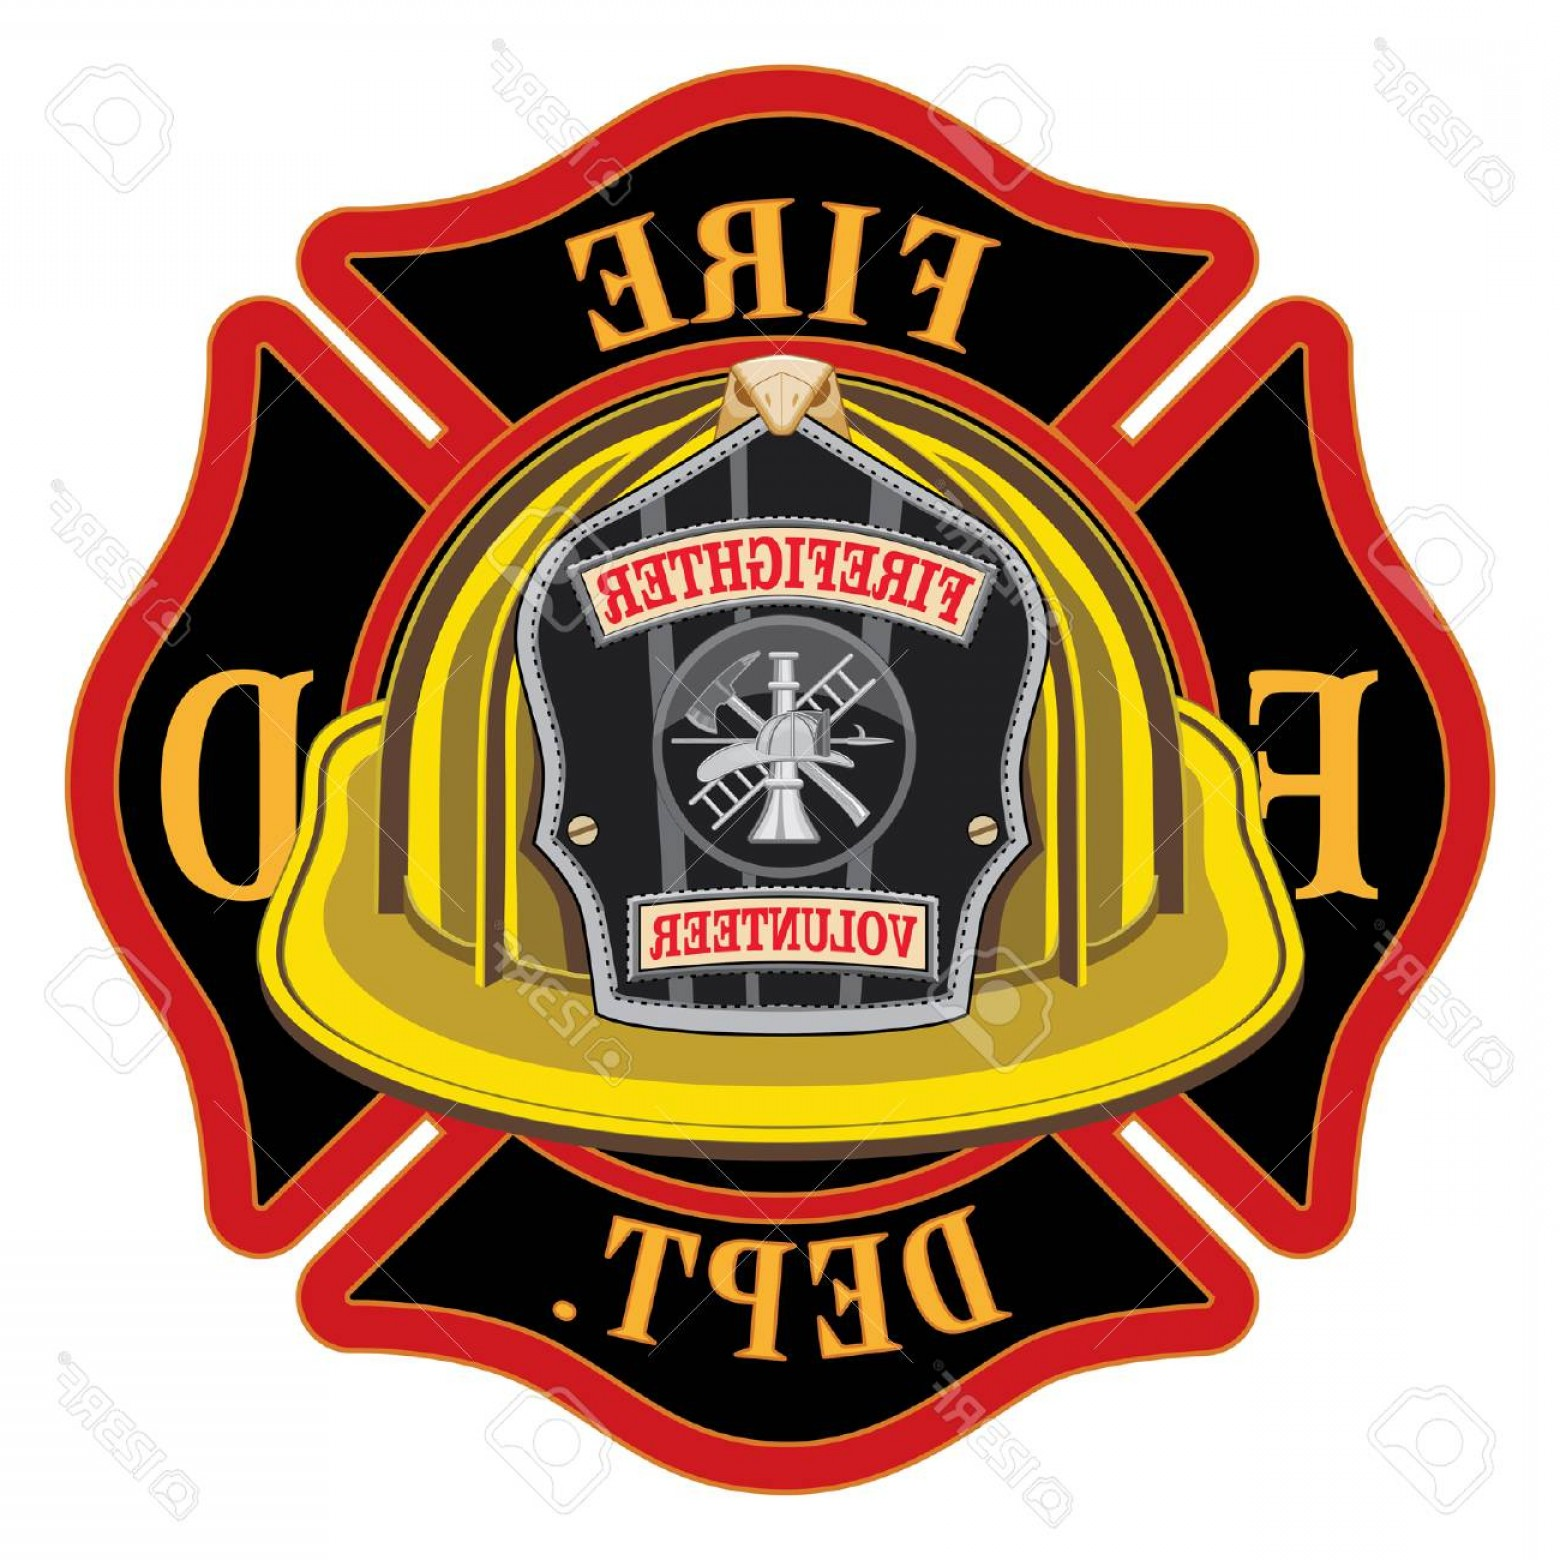 Fire Maltese Vector: Photostock Vector Fire Department Cross Volunteer Yellow Helmet Is An Illustration Of A Fireman Or Firefighter Maltese